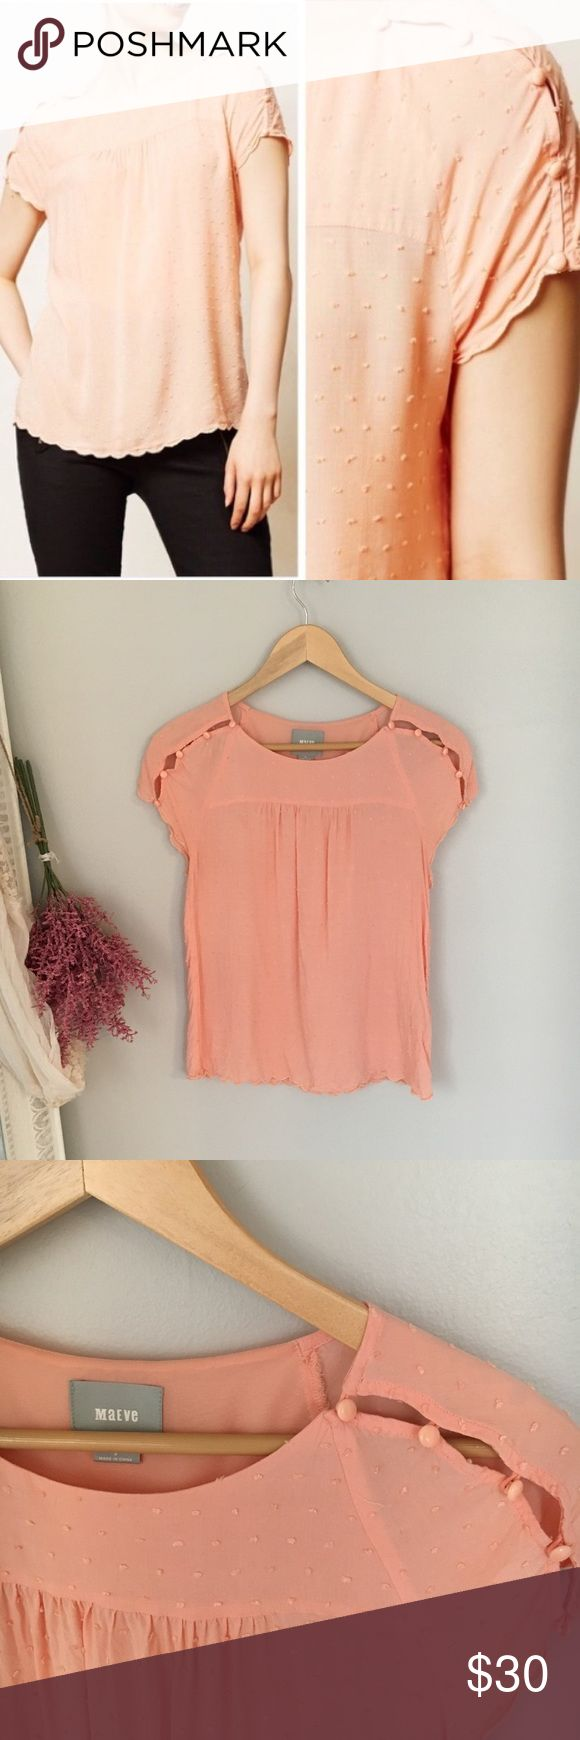 Maeve Anthropologie Peach short sleeve top Adorable mini polka dot top with open button shoulder. Size 2. Anthropologie Tops Blouses